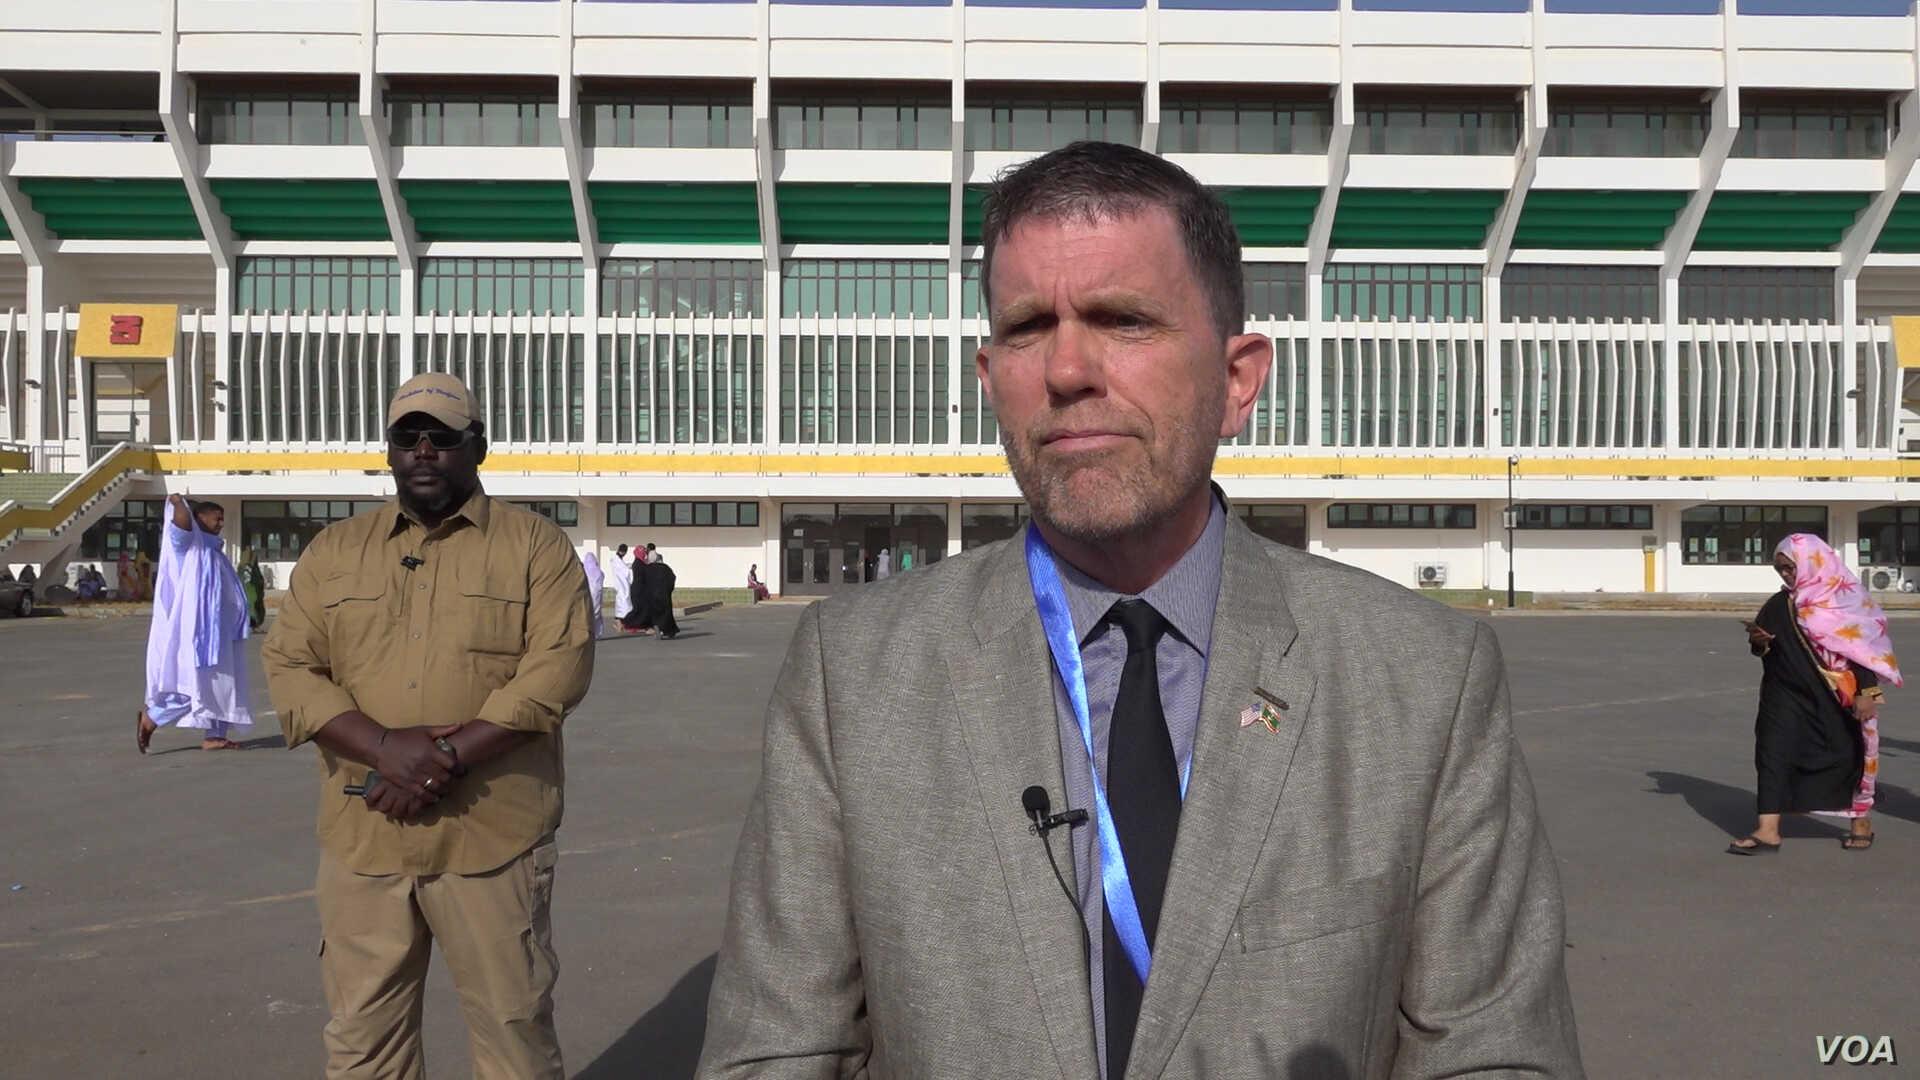 U.S. Ambassador to Mauritania Michael Dodman and his team observed various polling stations throughout the capital on Saturday (